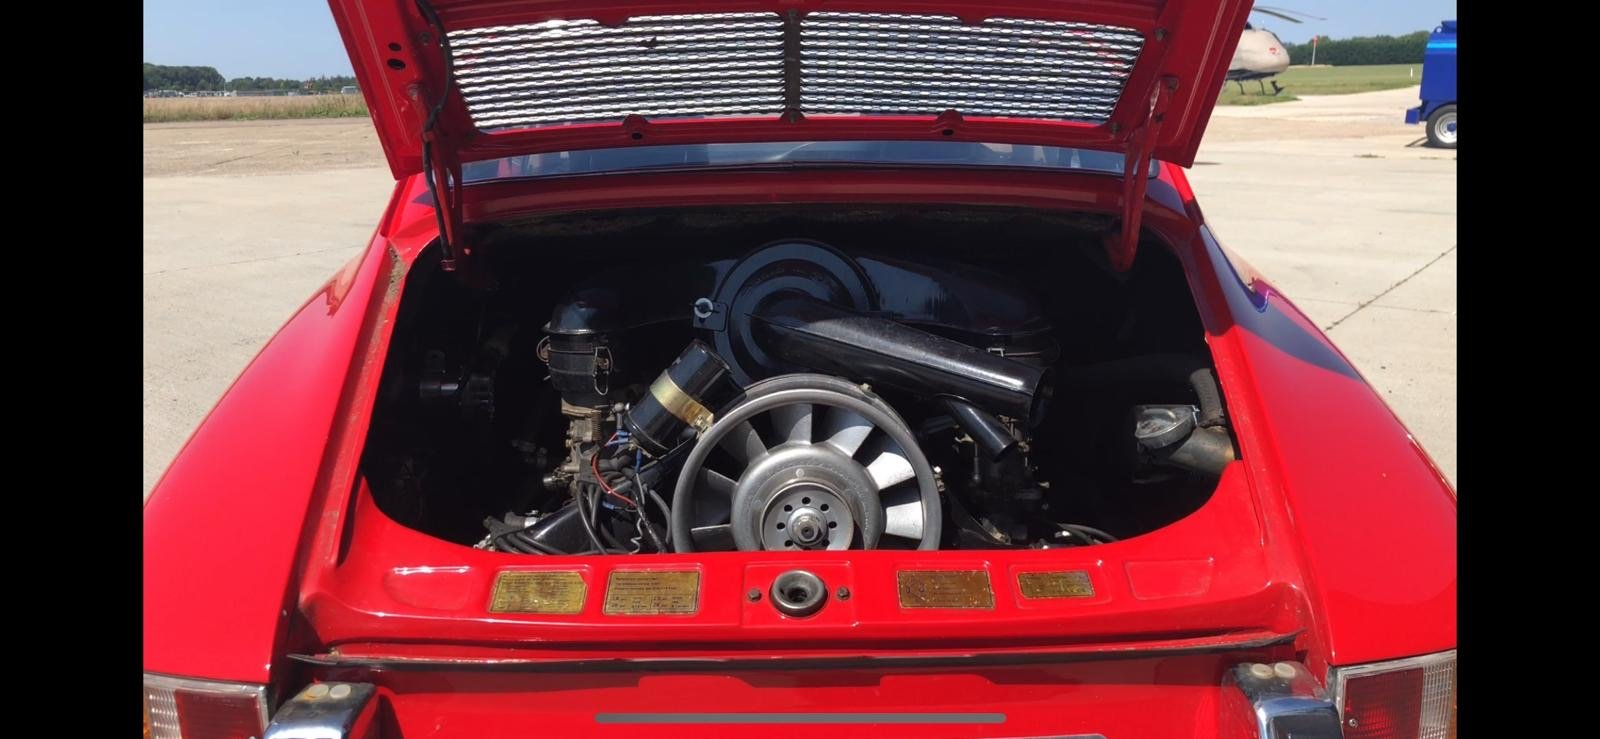 Porsche 911T RHD 1969 Sportamatic Coupe Red For Sale (picture 3 of 9)